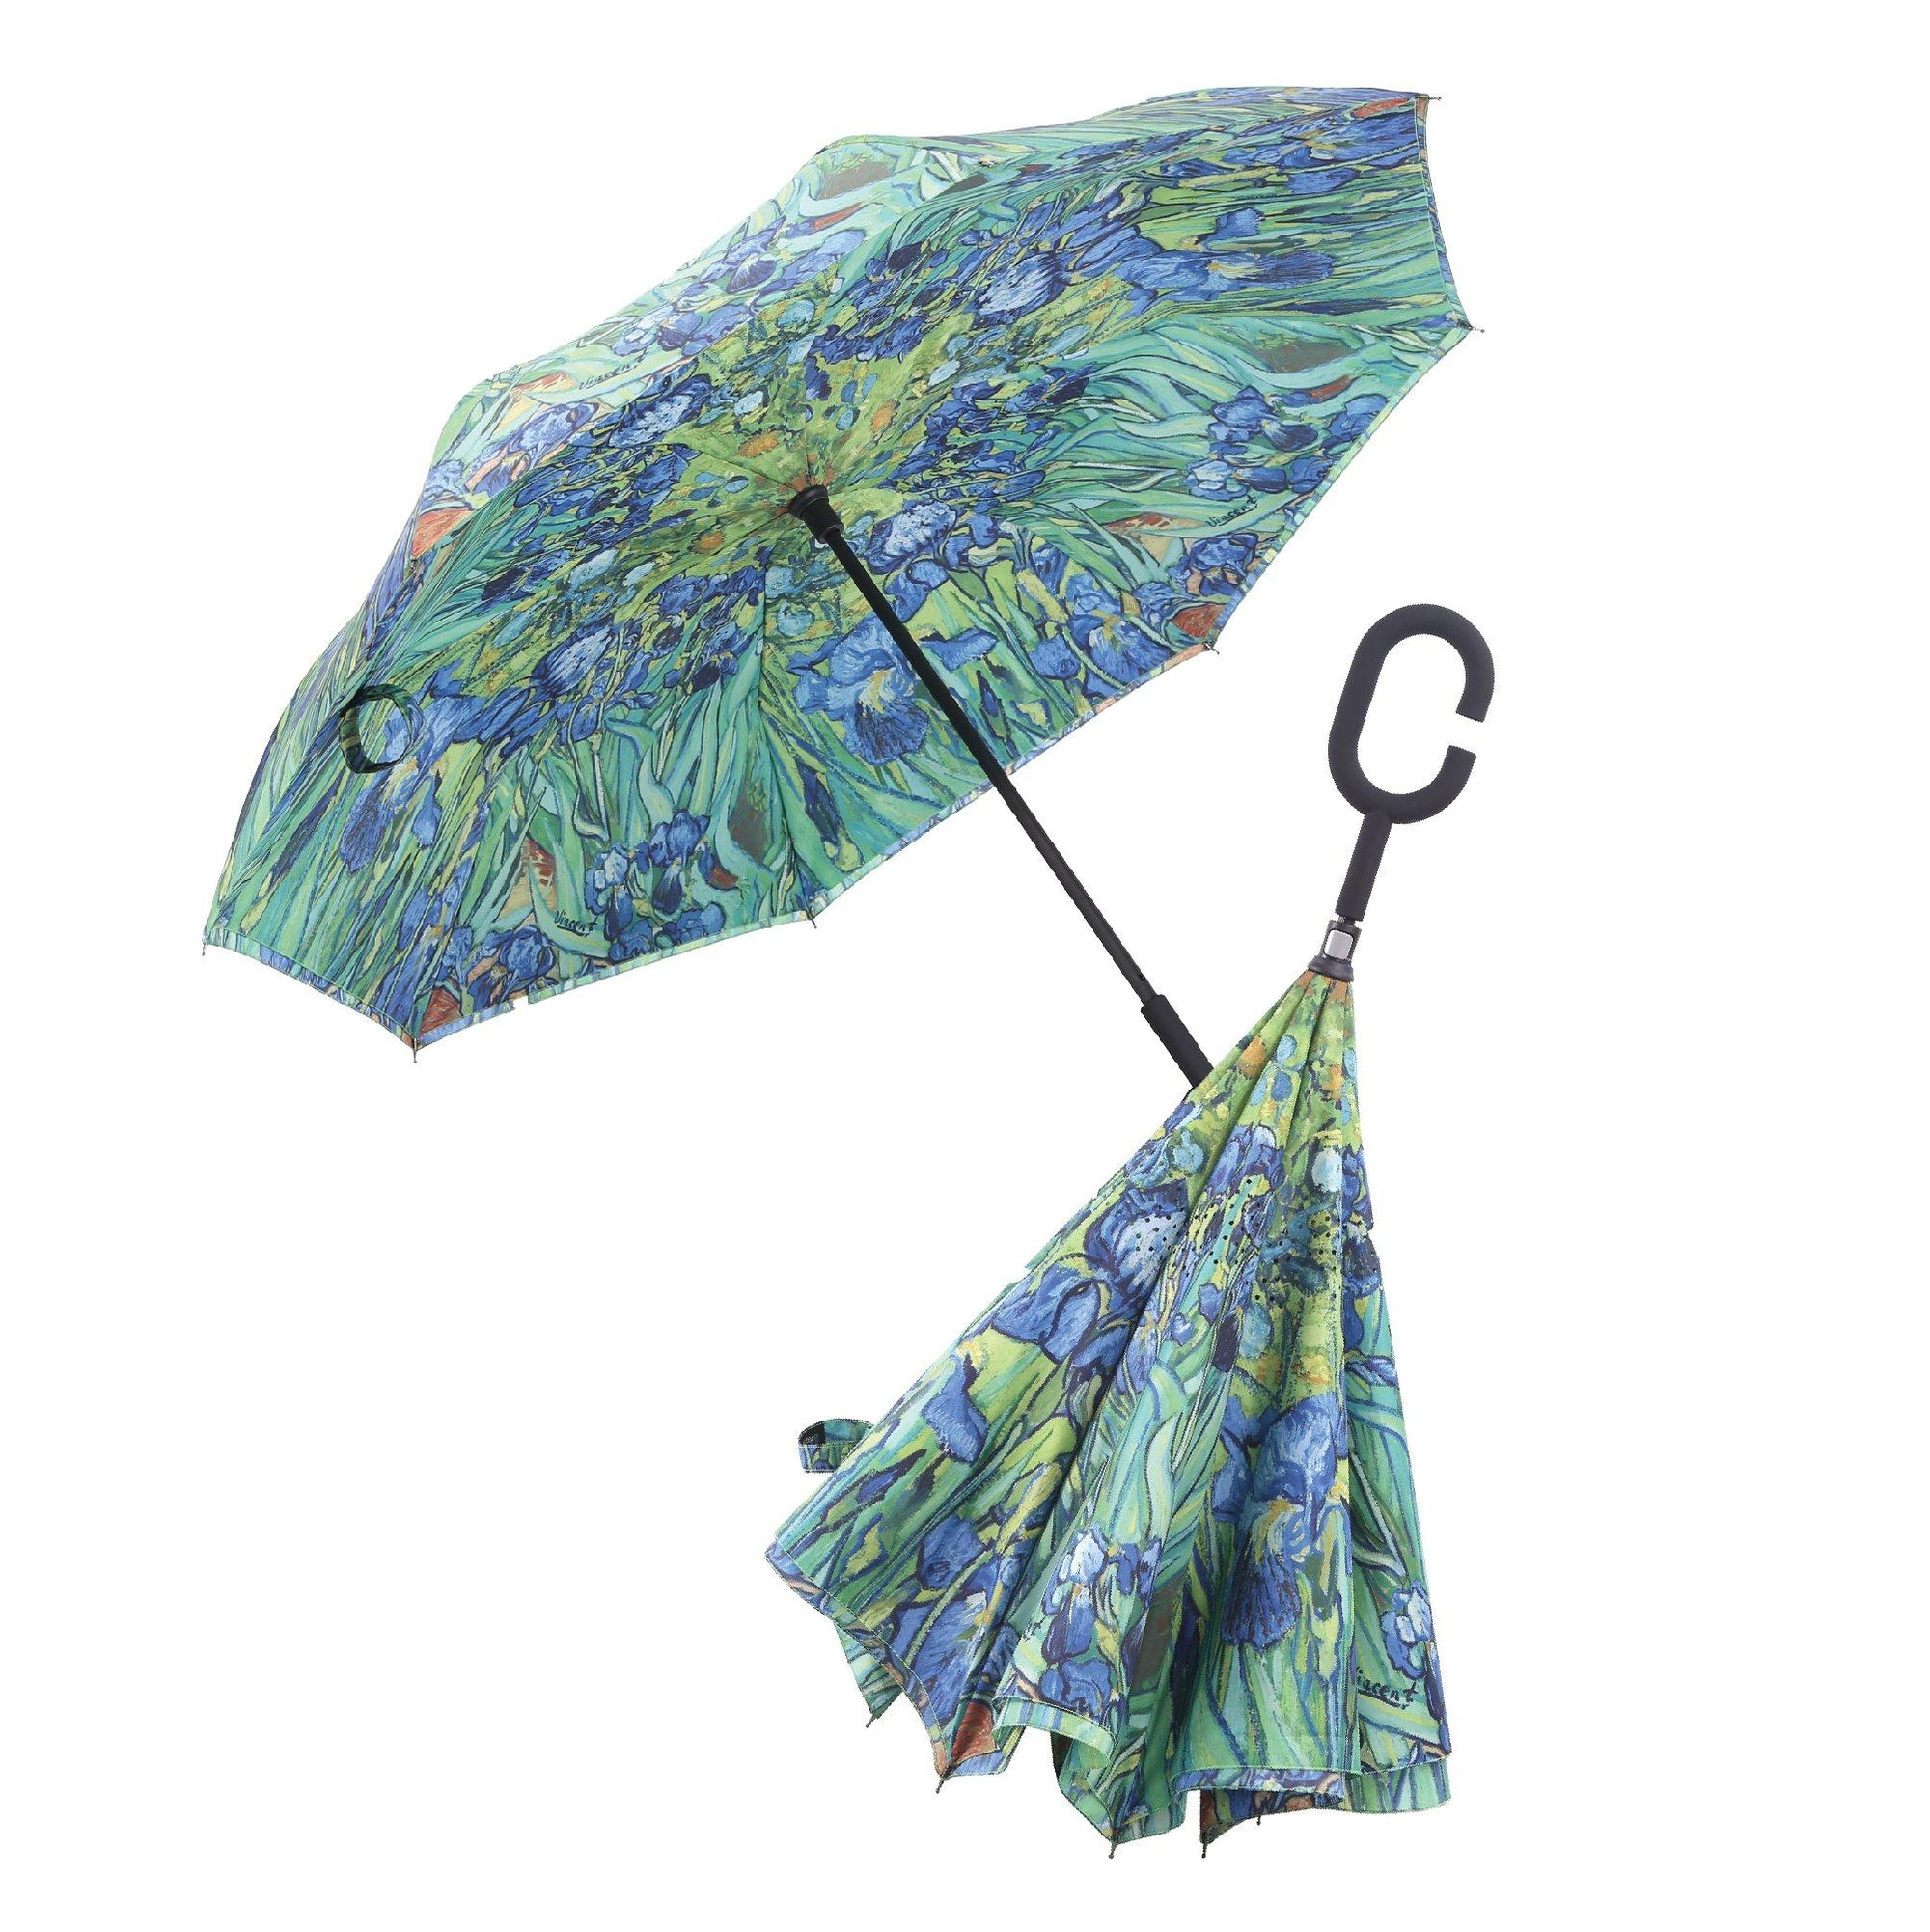 Image of a RainCaper Van Gogh Irises inverted umbrella shown both open and closed